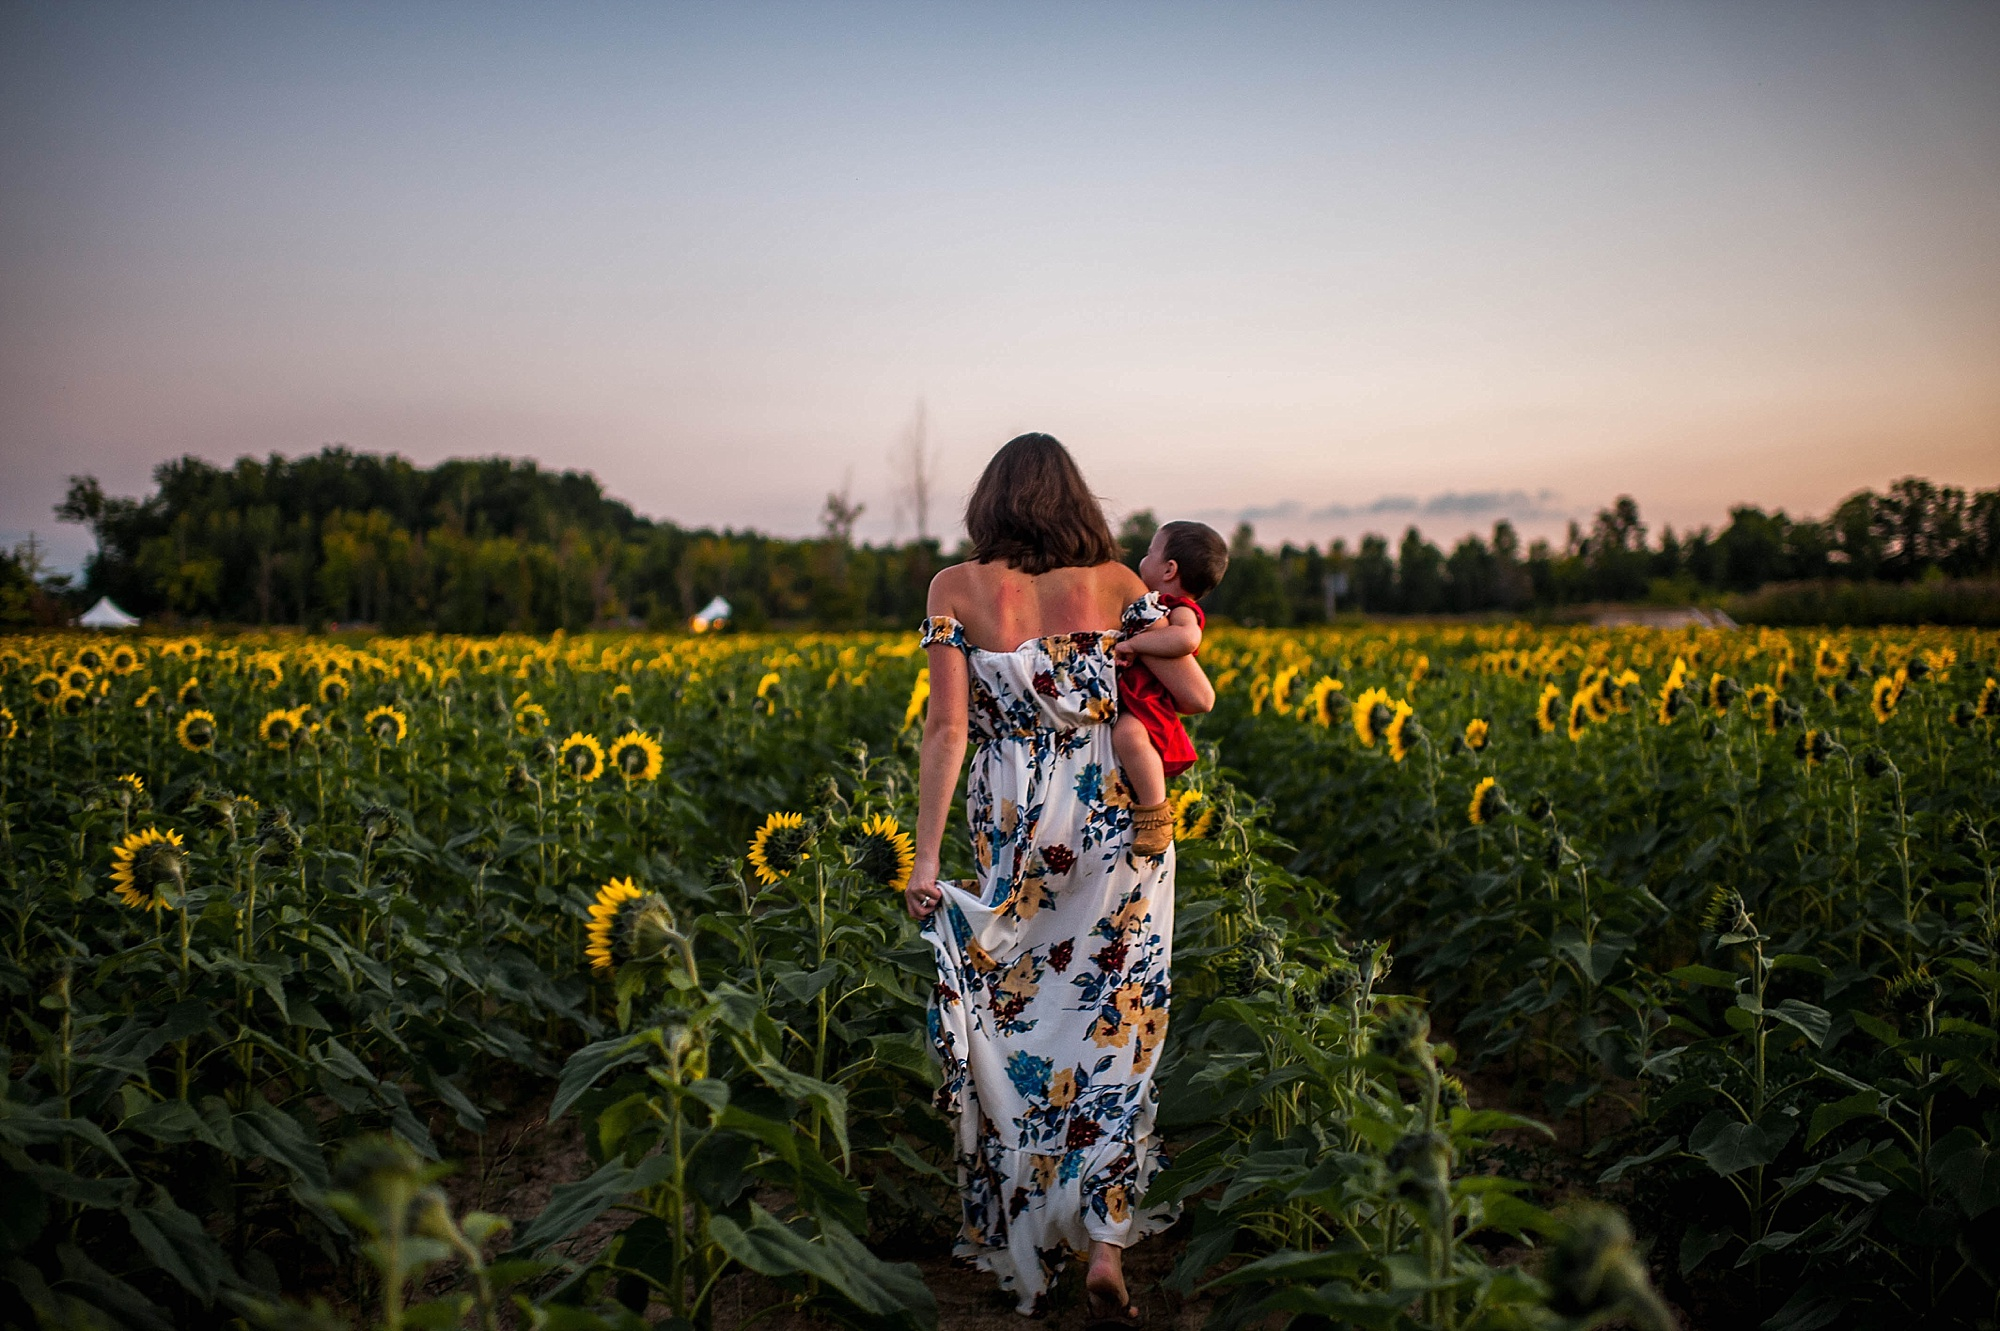 lauren-grayson-photography-cleveland-ohio-photographer-sunflower-fields-sunset-golden-hour-photo-shoot-mommy-and-me-family-child-photographer_0586.jpg